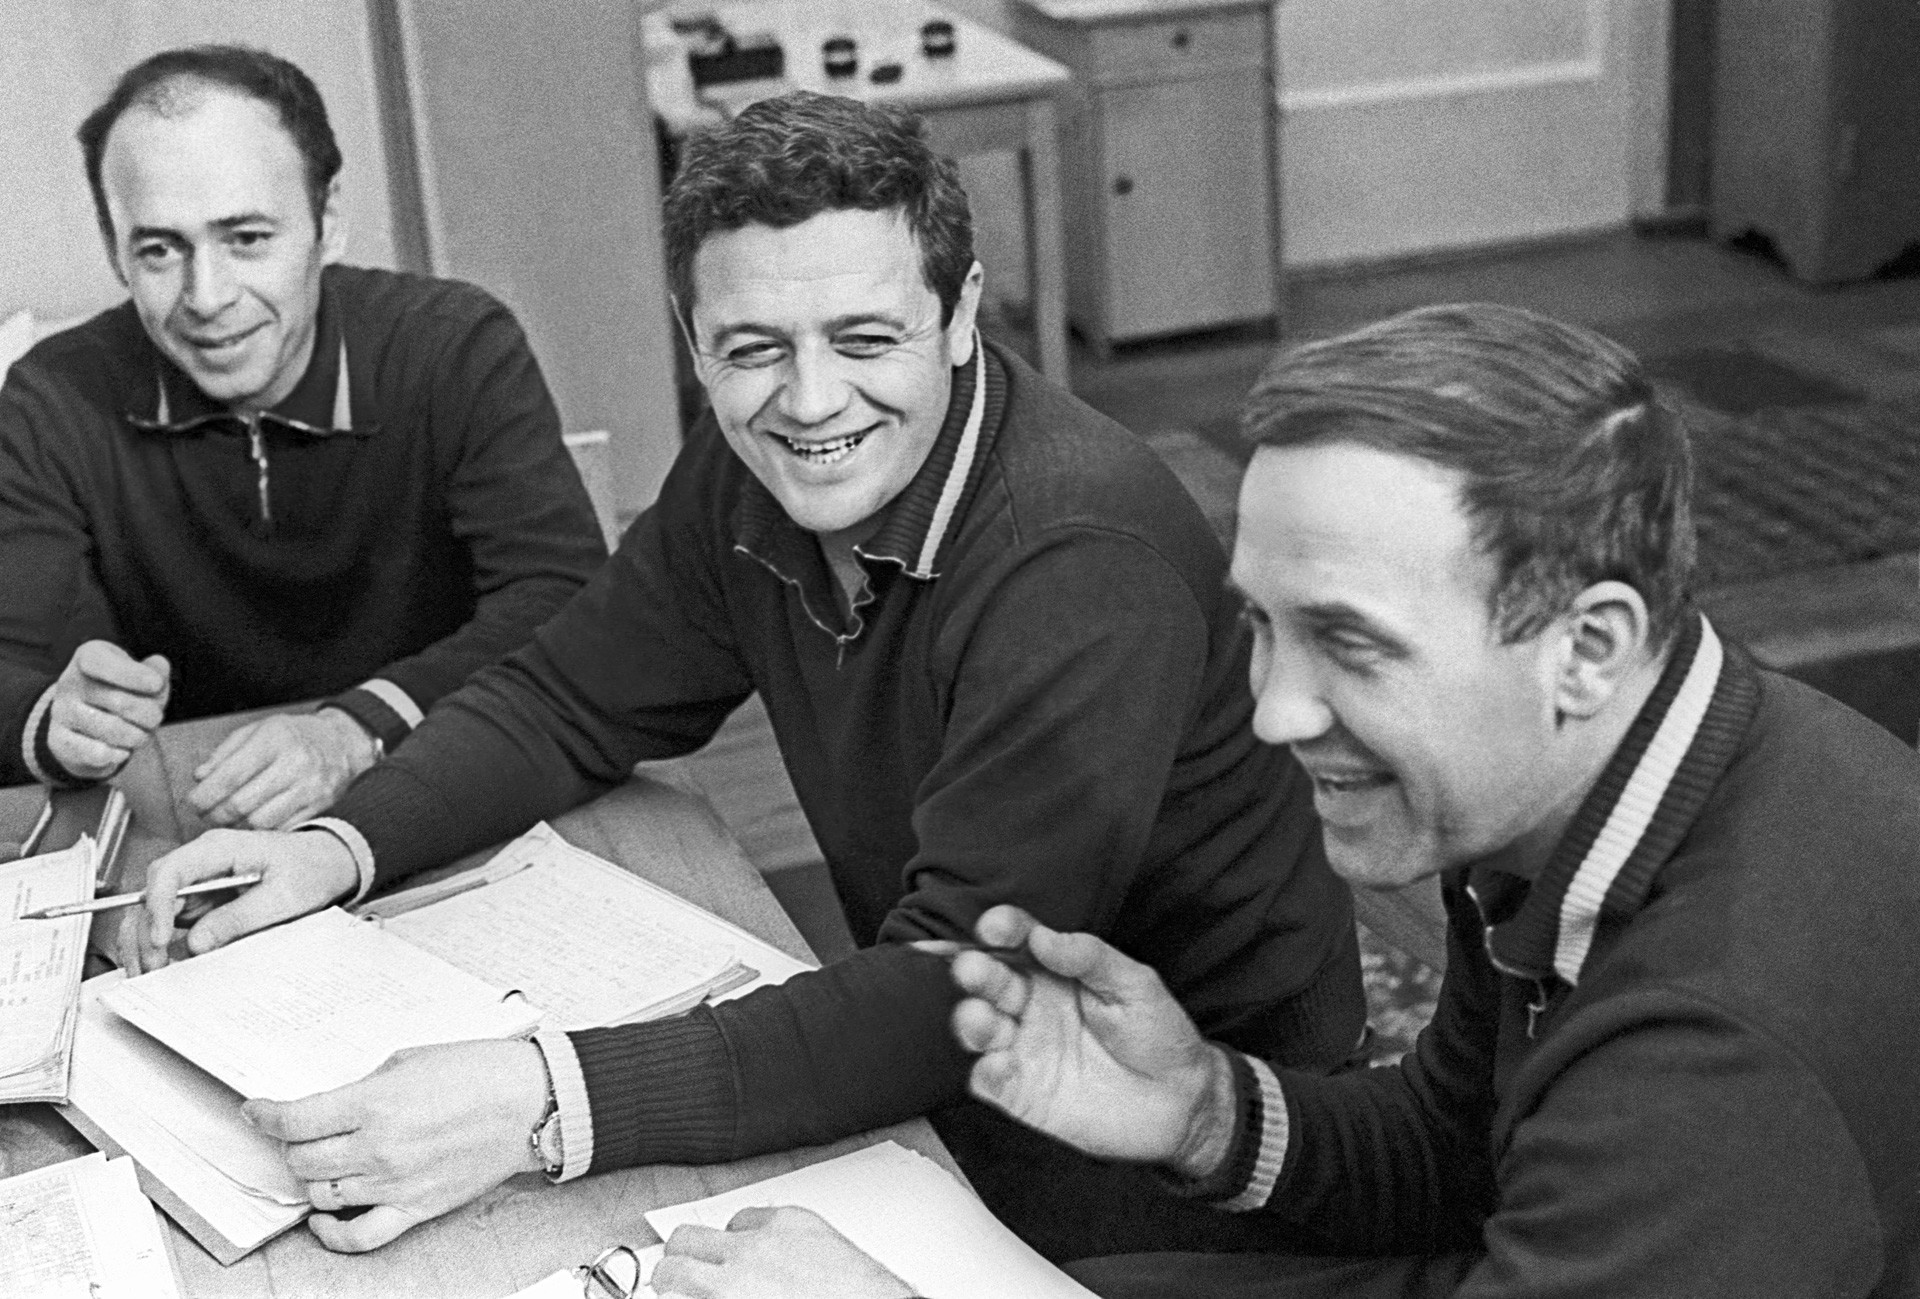 Soyuz 11 spaceship Test Engineer Viktor Patsayev, Flight Engineer Vladislav Volkov, and Crew Commander Georgy Dobrovolsky (L-R) after a training session inside a simulator